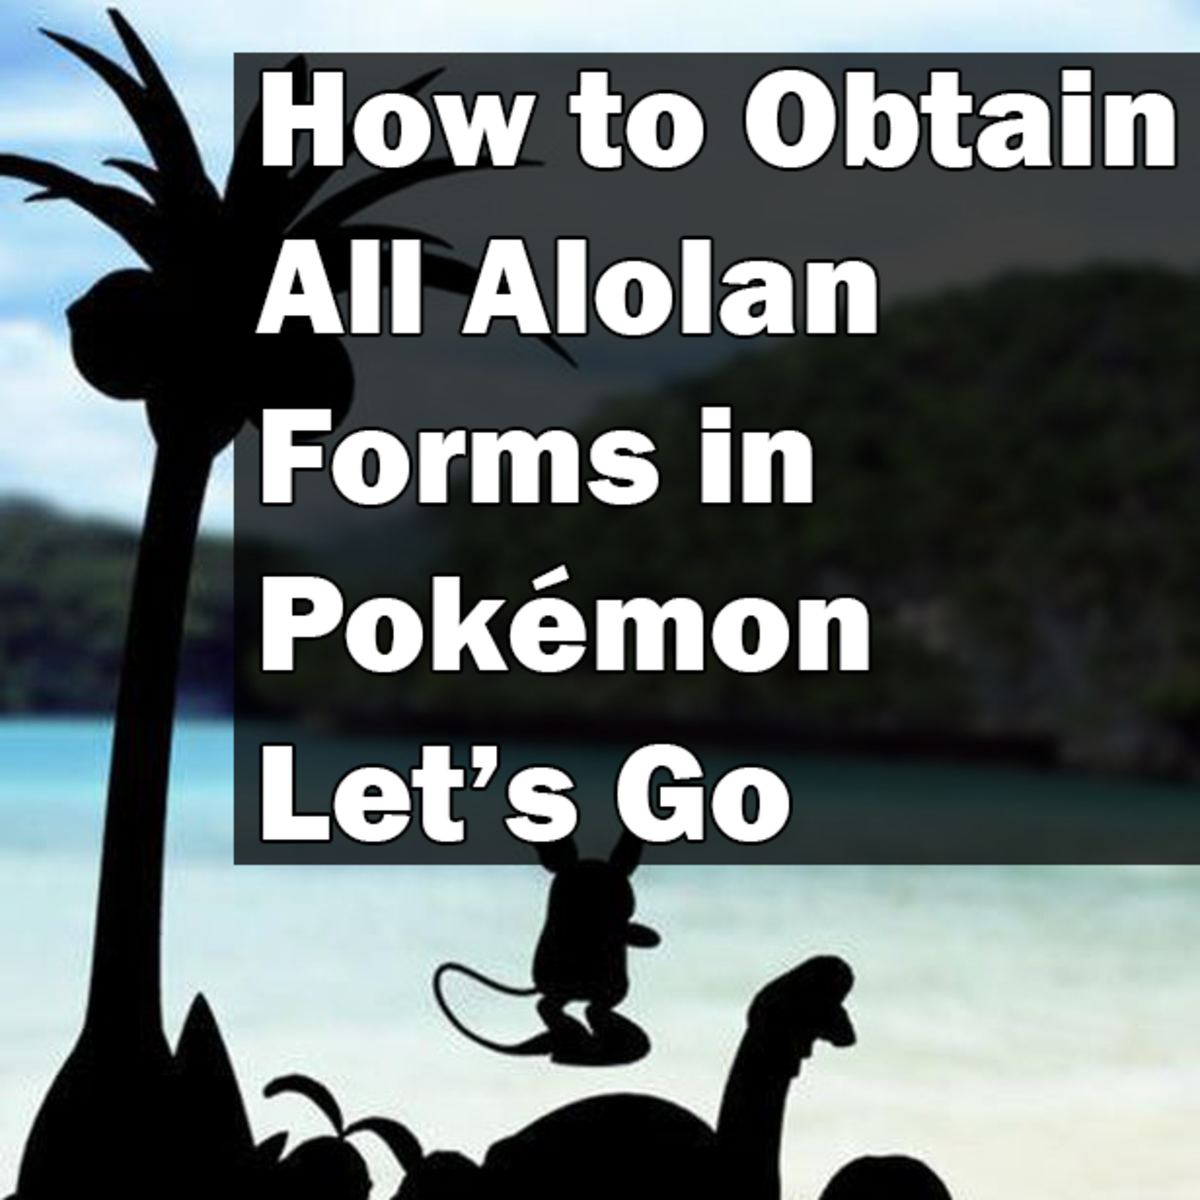 Pokemon Let's Go Alolan Forms Guide